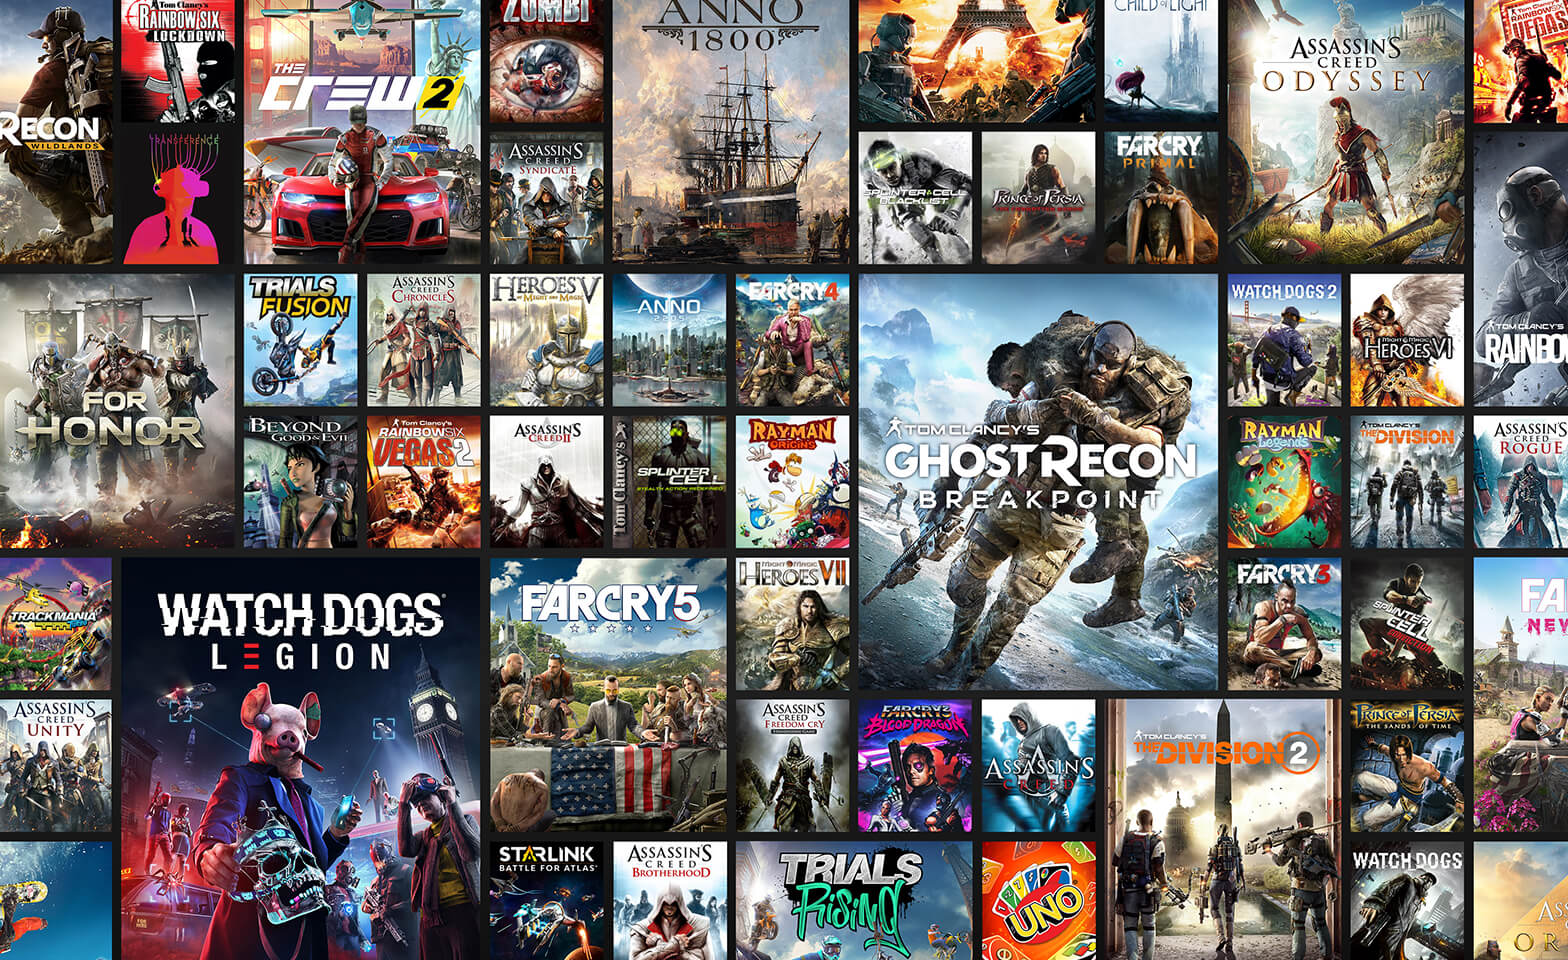 Financial Problem, Ubisoft Postponed The Release of 5 New Games